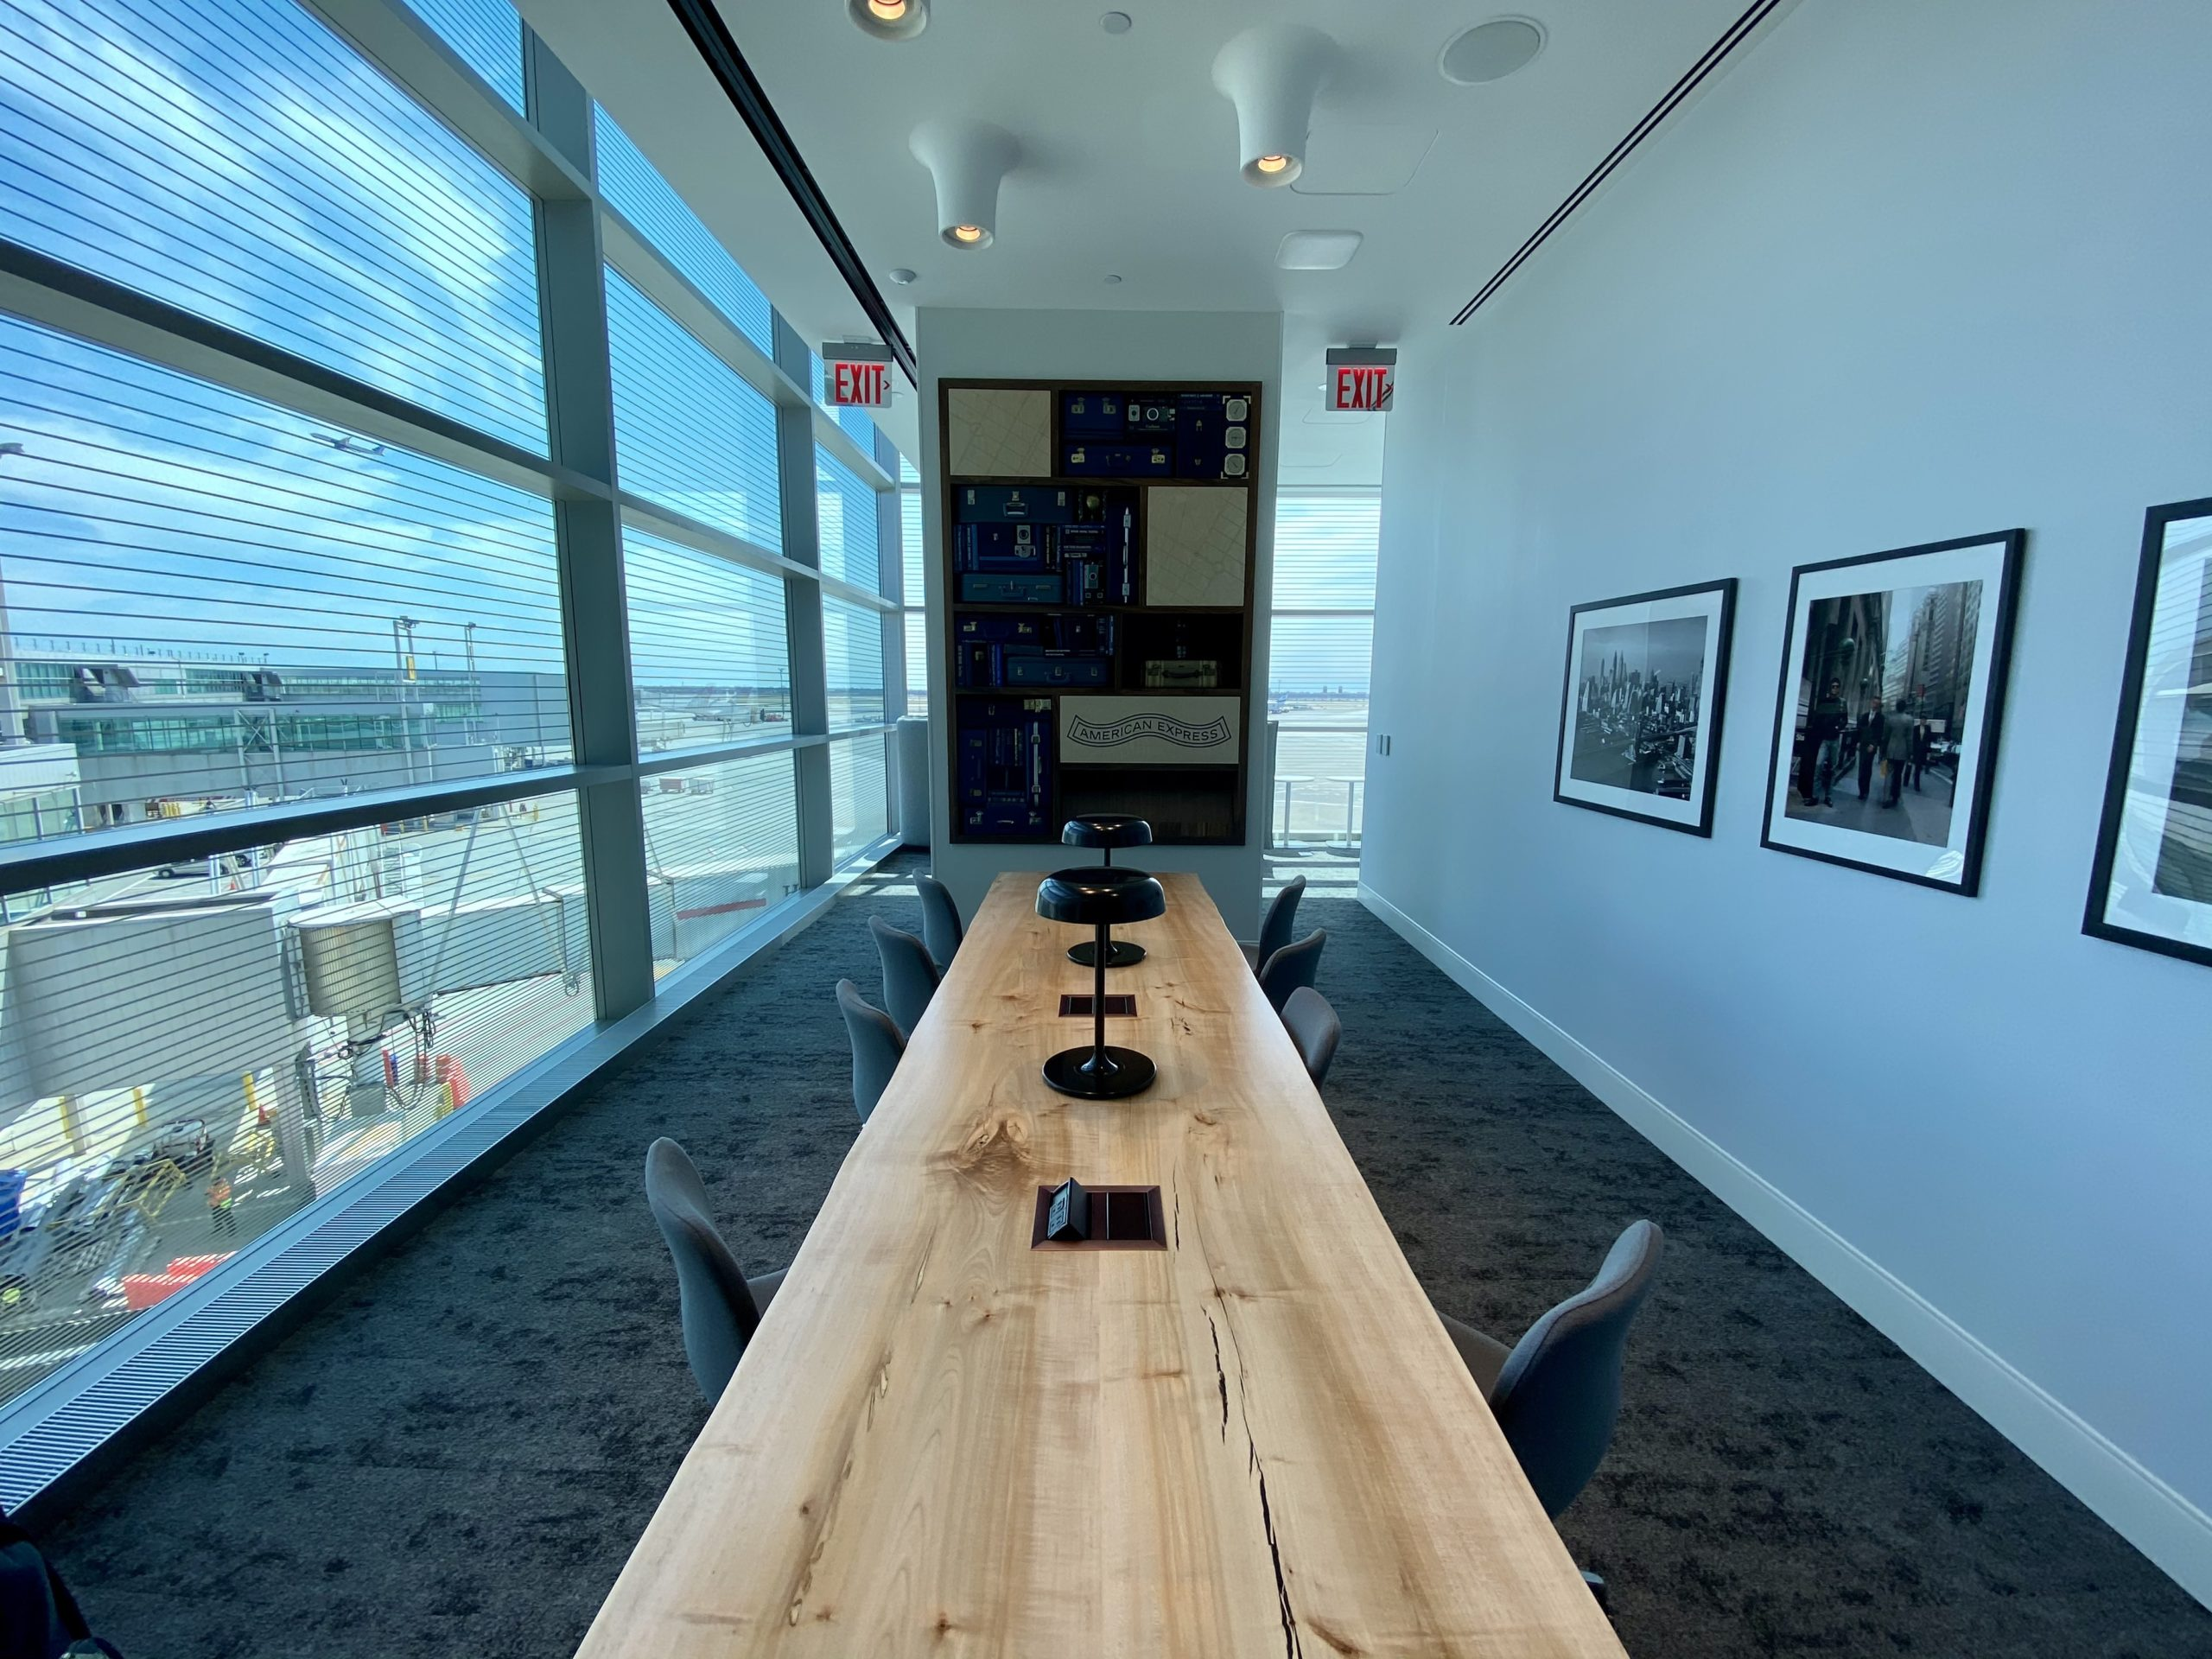 jfk centurion lounge work space